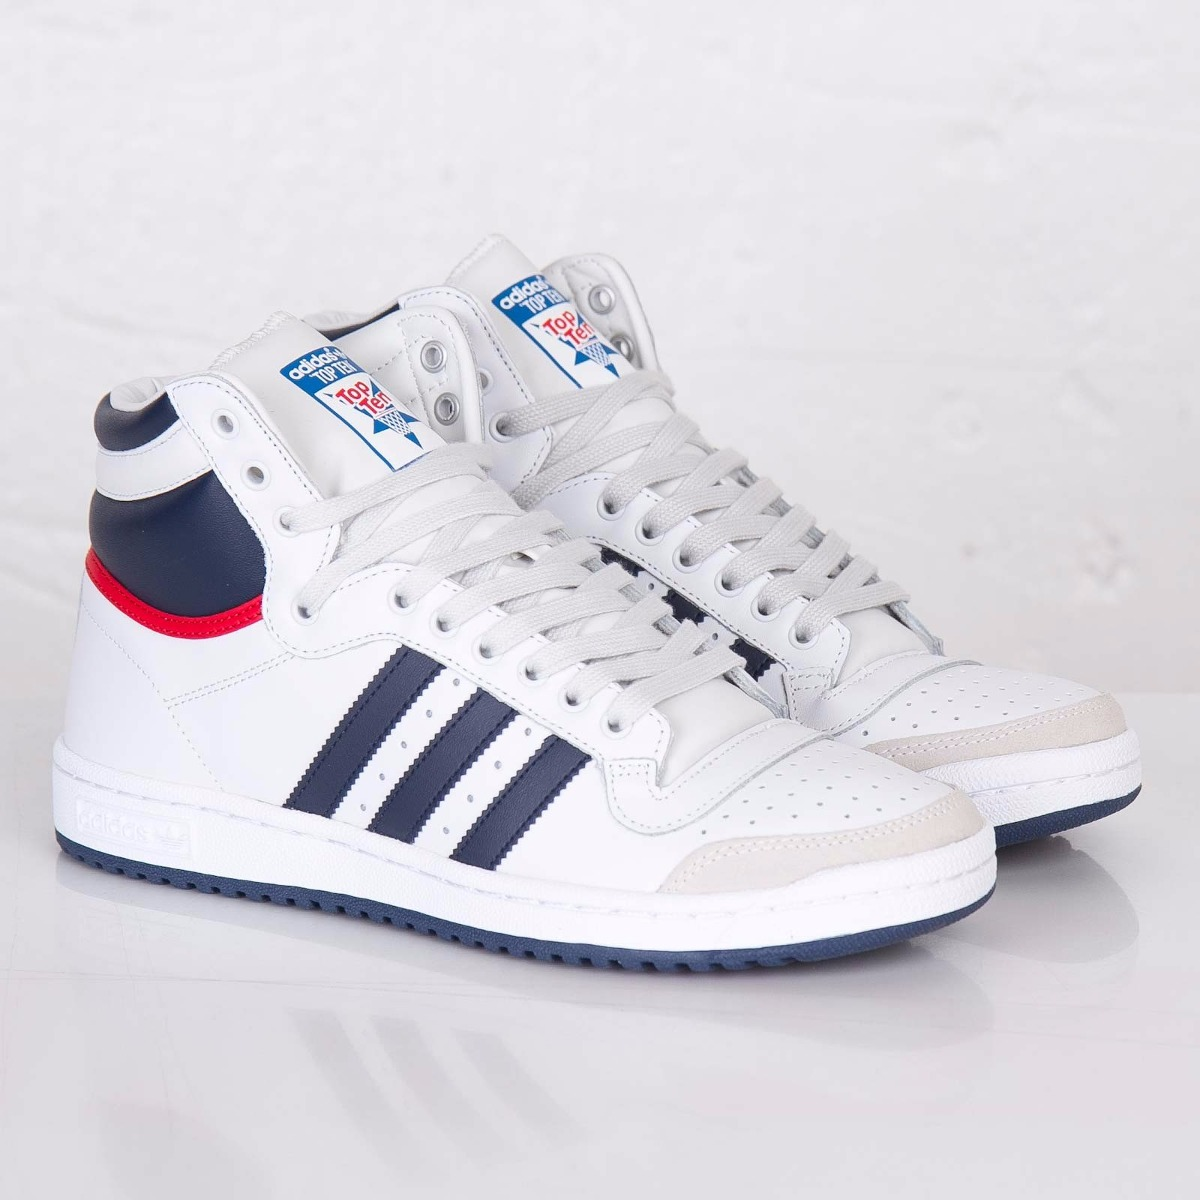 zapatillas adidas originals top ten hi mcvent.cub. Cargando zoom. c0018eb16d352